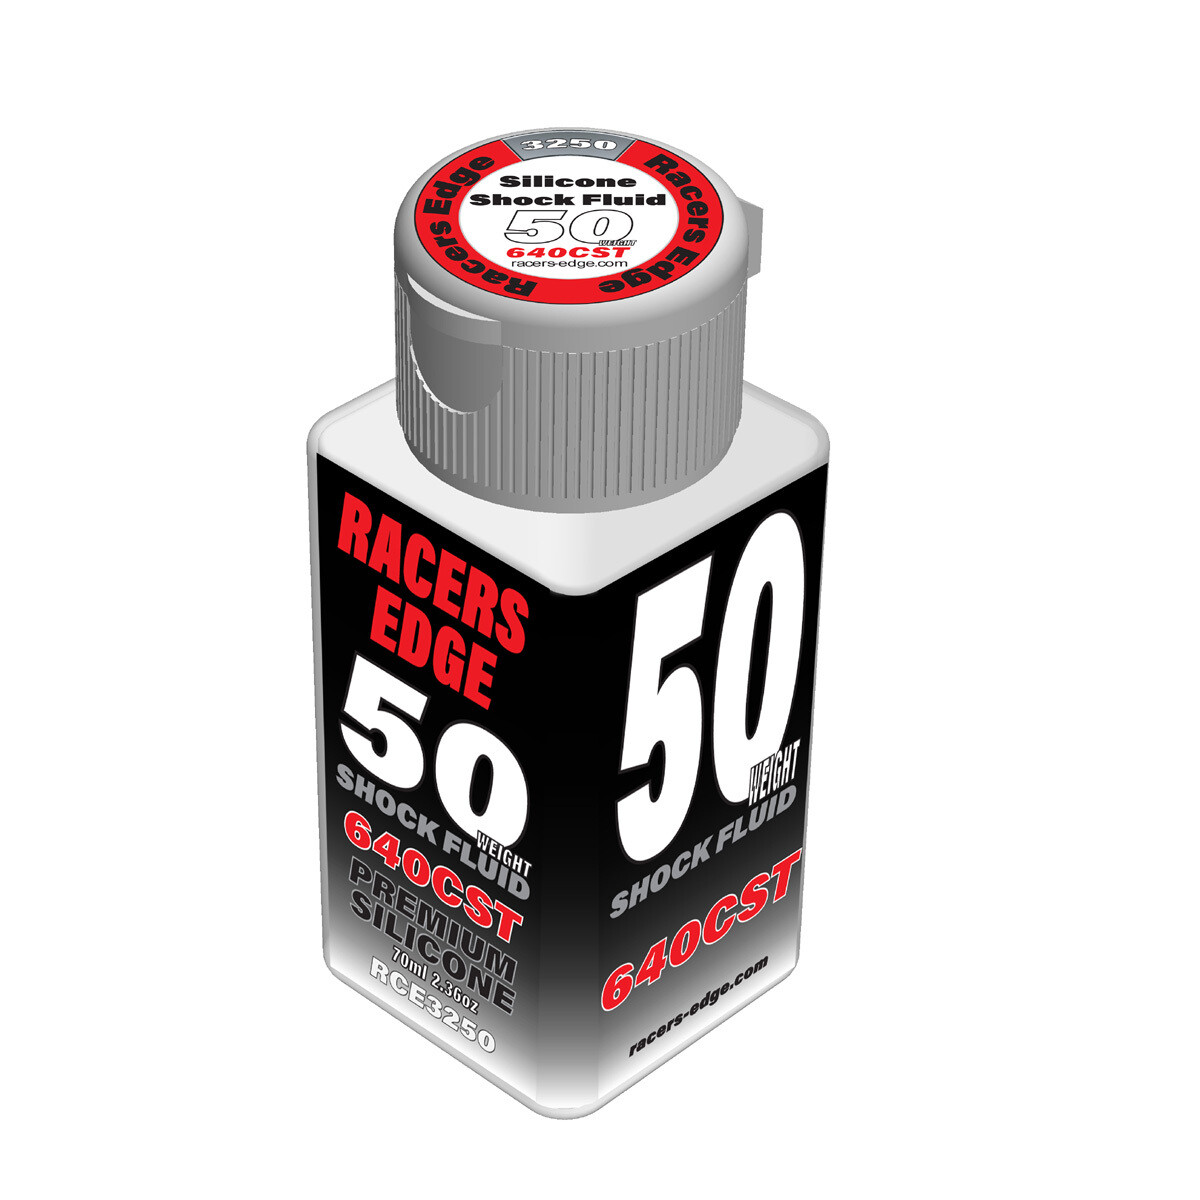 Racers Edge 50 Weight, 640cSt, 70ml 2.36oz Pure Silicone Shock Oil RCE3250